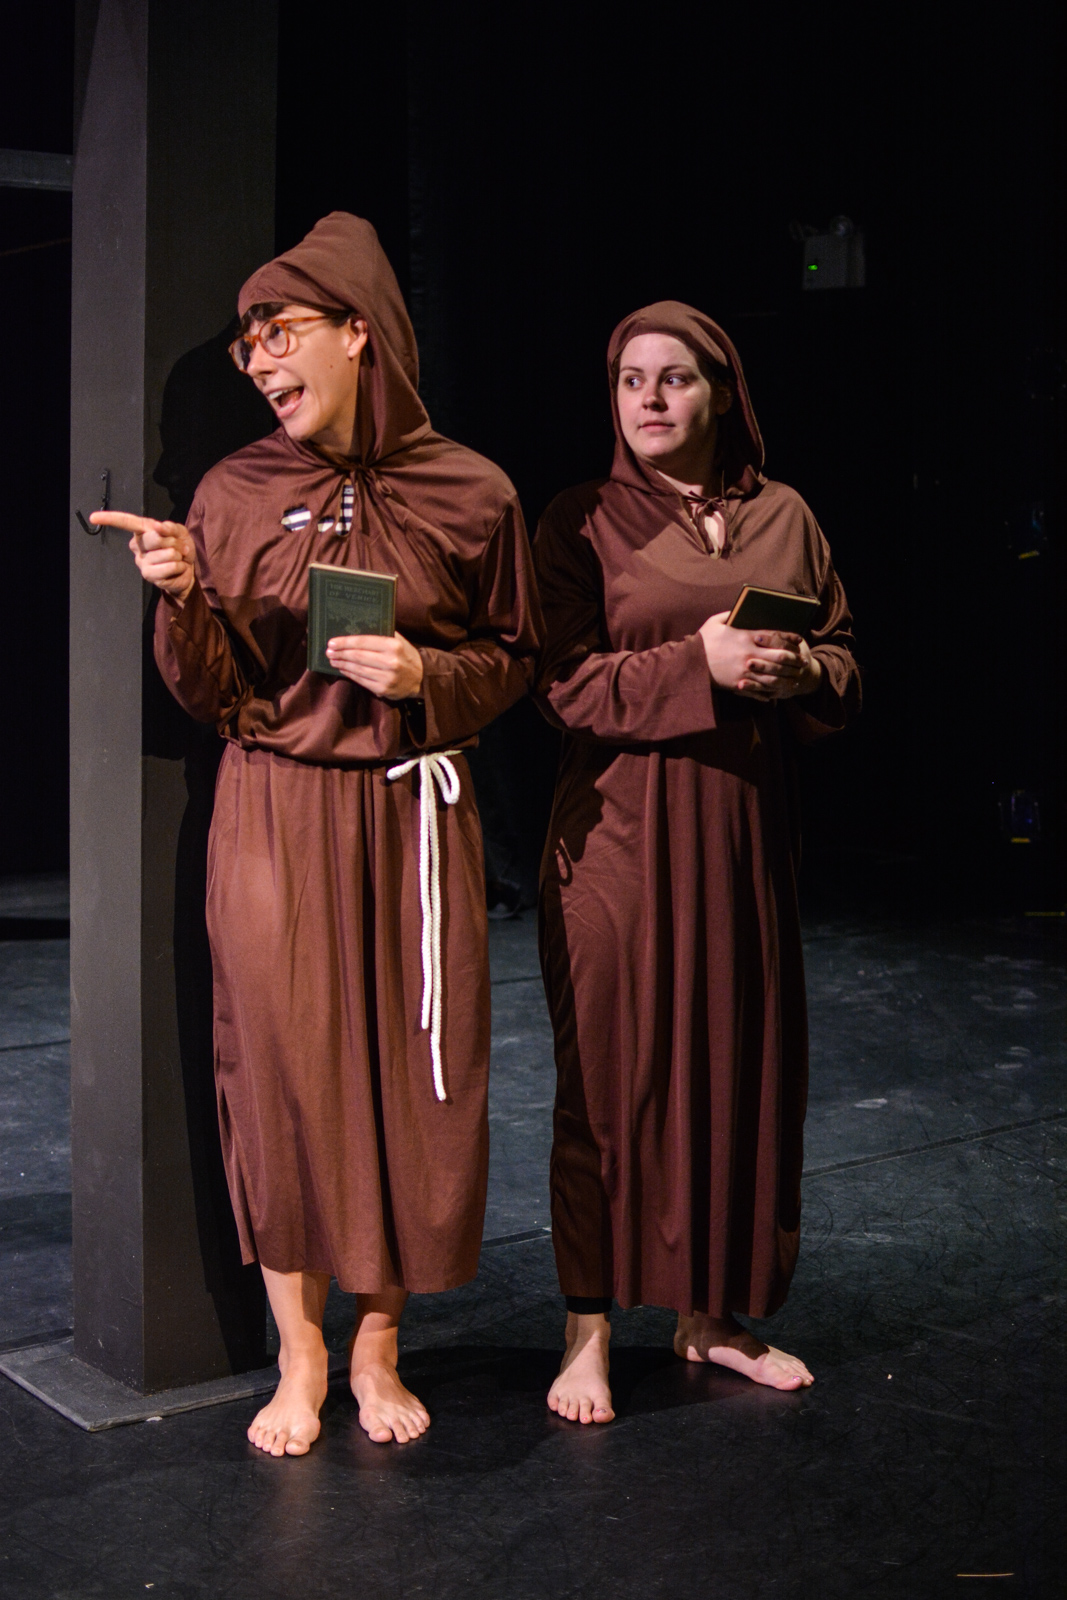 Kristina as Brother Vulgo with Amalia Oswald as Brother Ugh in   Marvellous  . Photo by Kelley Van Dilla.